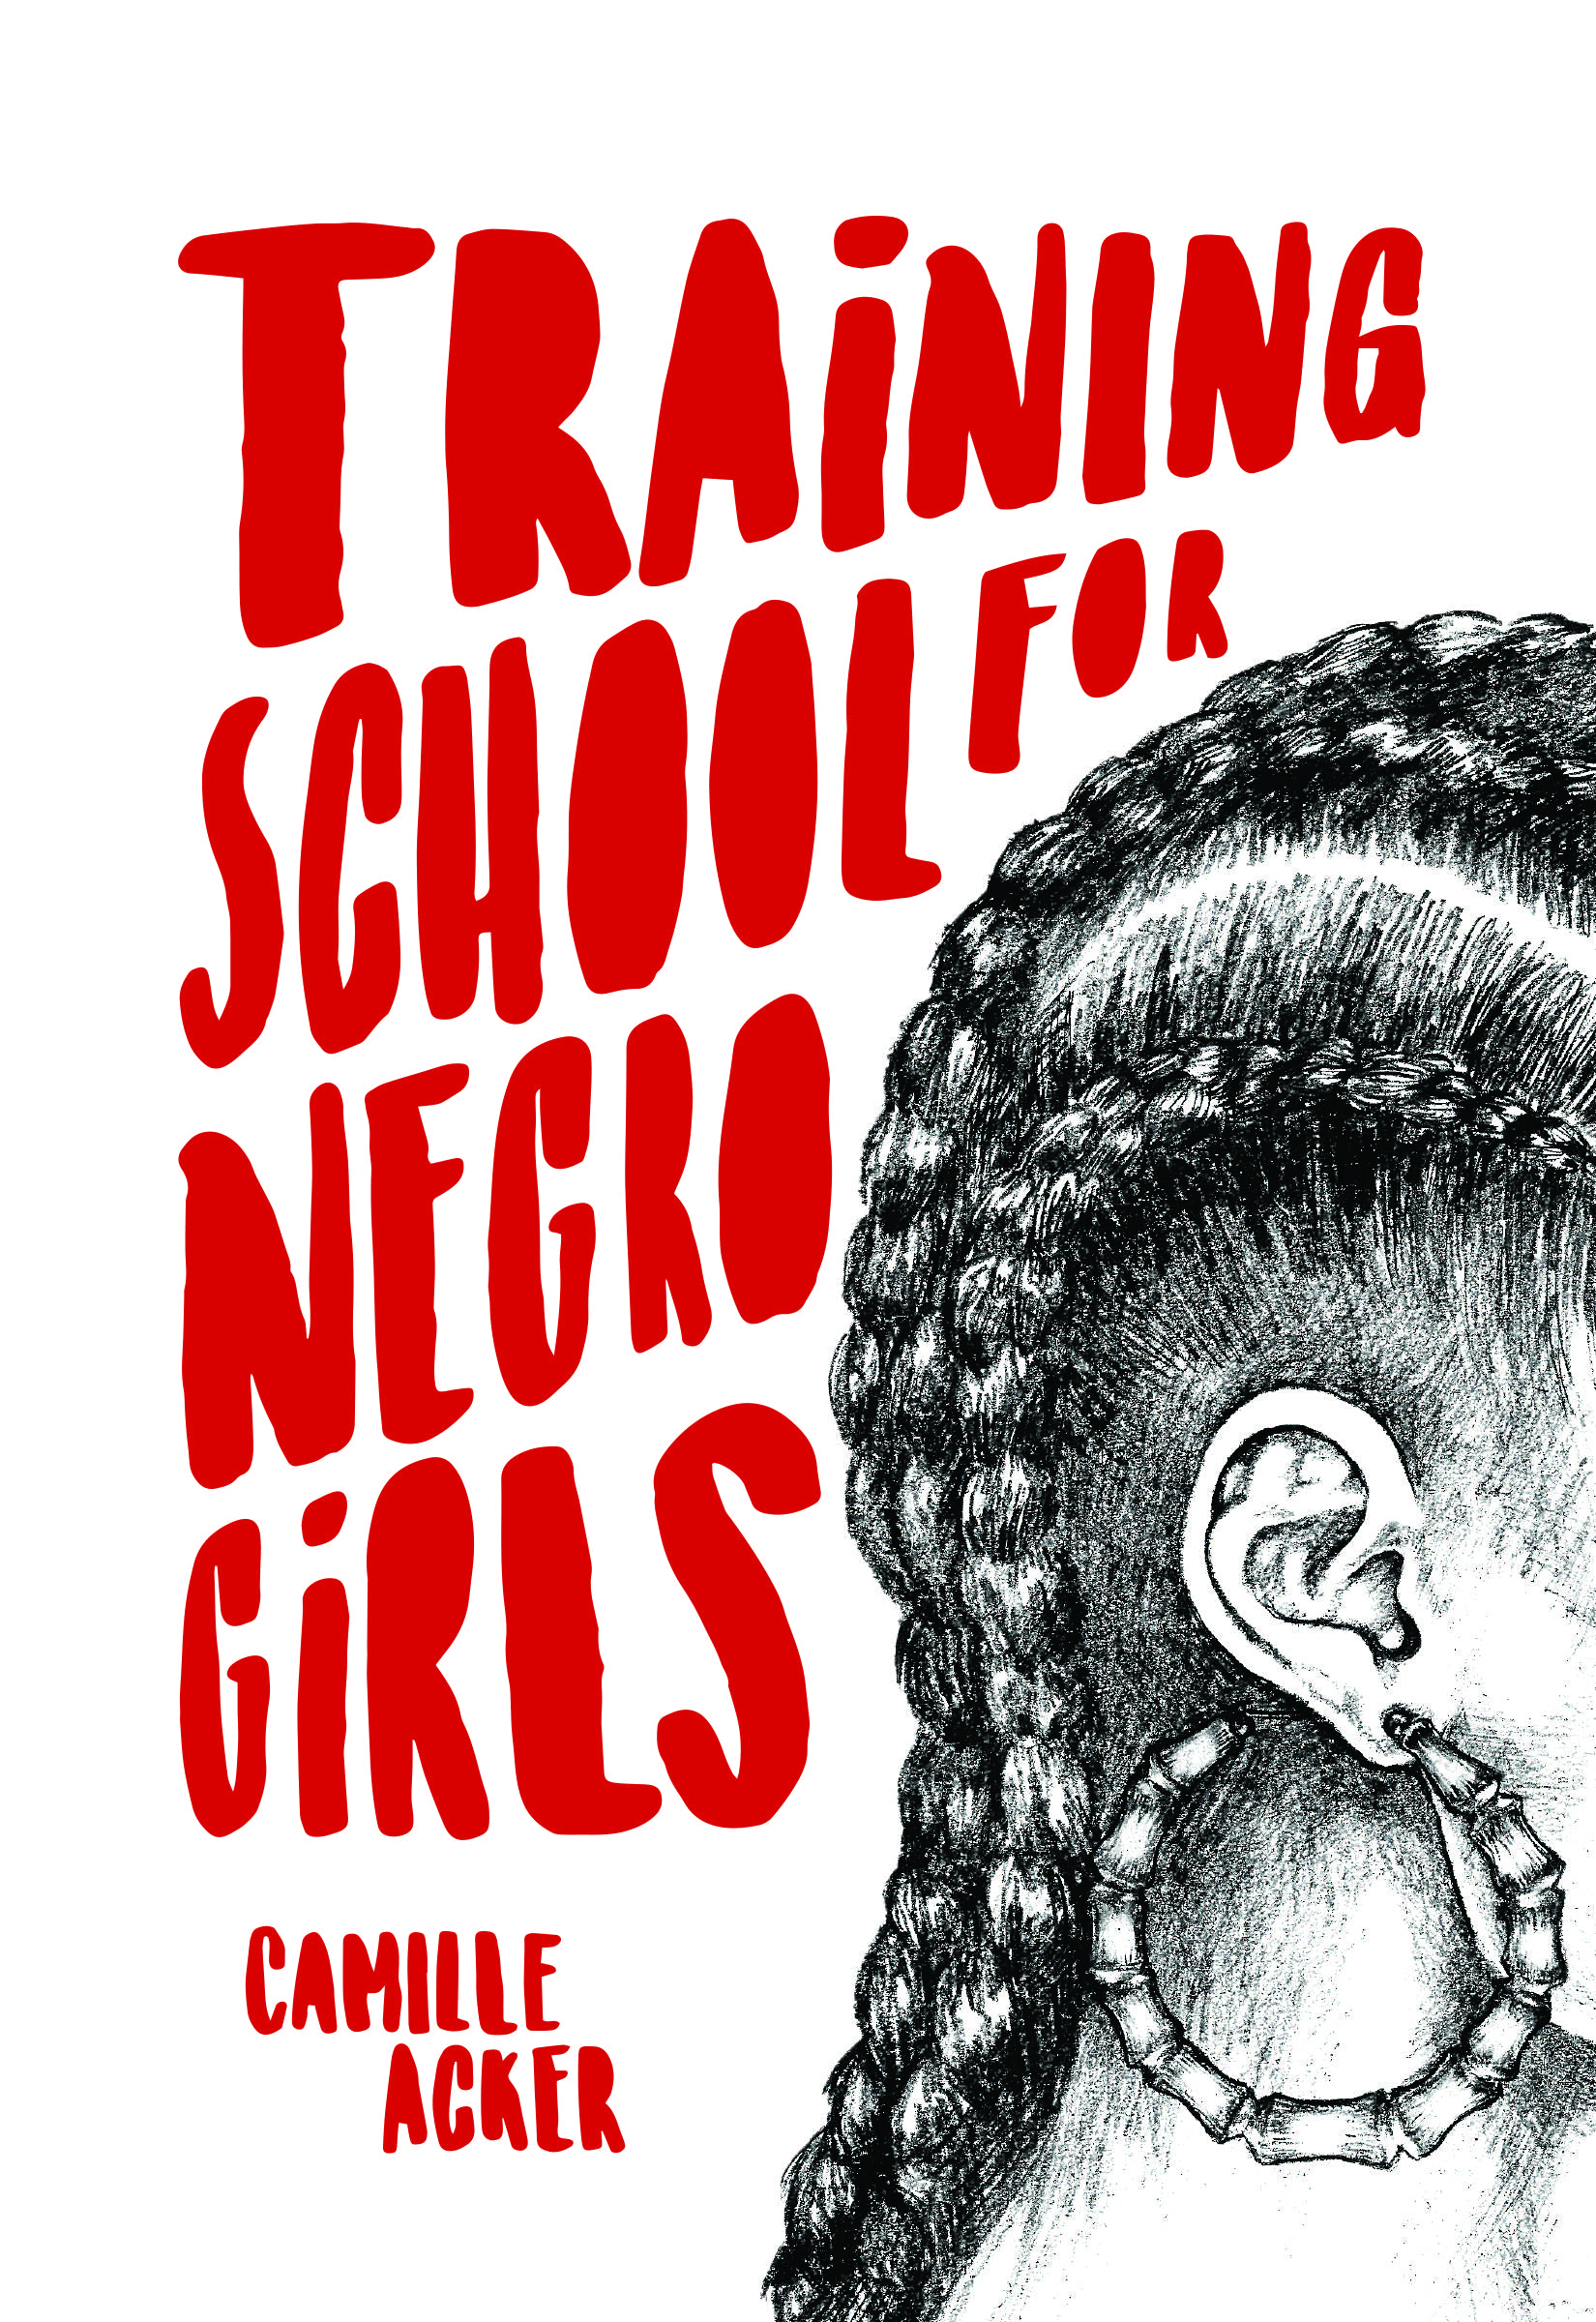 'Training School for Negro Girls' by Camille Acker